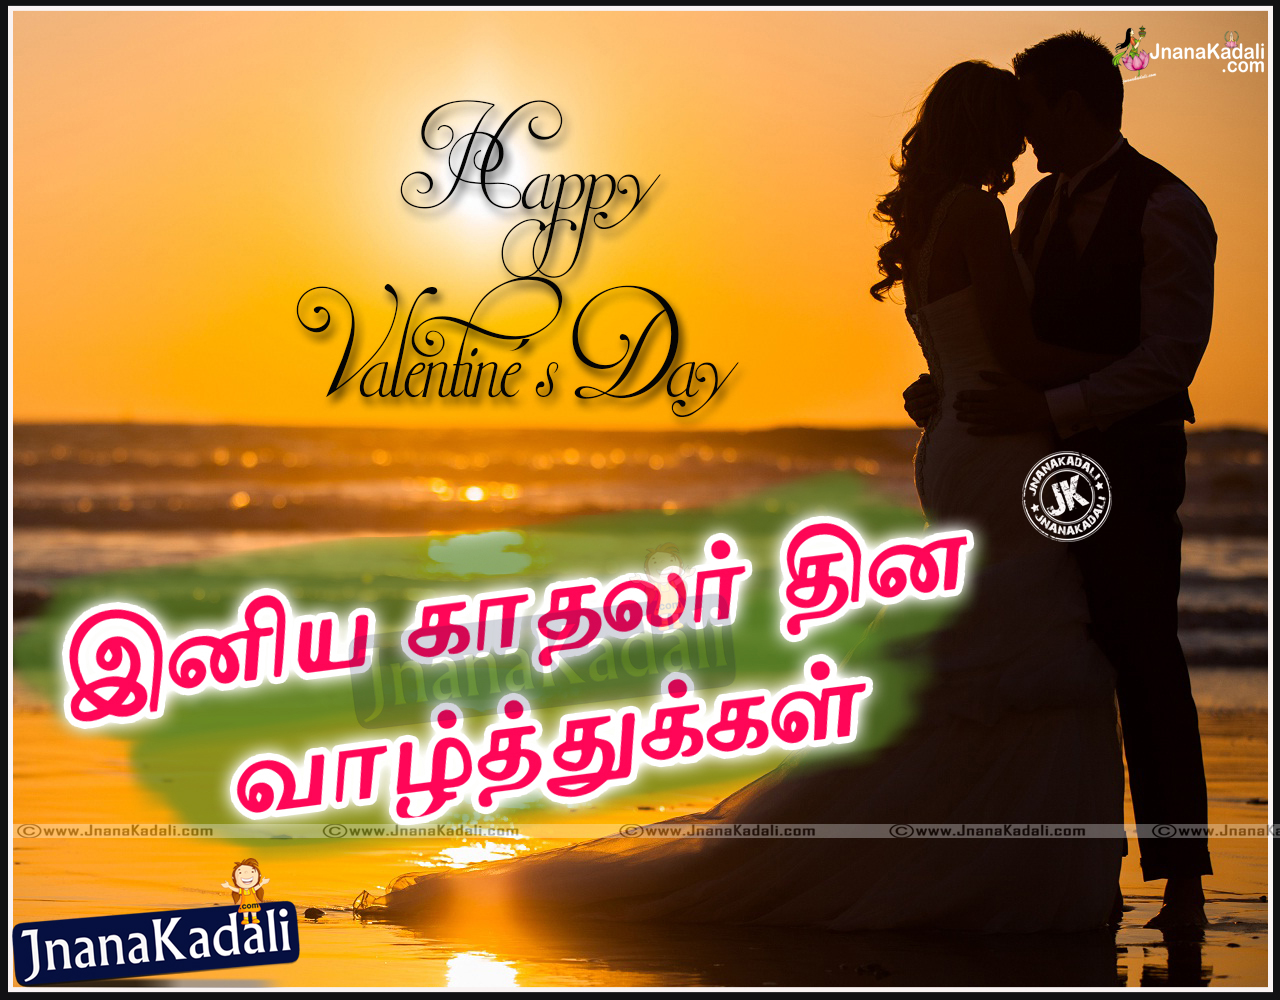 Motivational Life Quotes Of The Day Heat Touching Tamil Valentines Day Quotations And Messages  Jnana